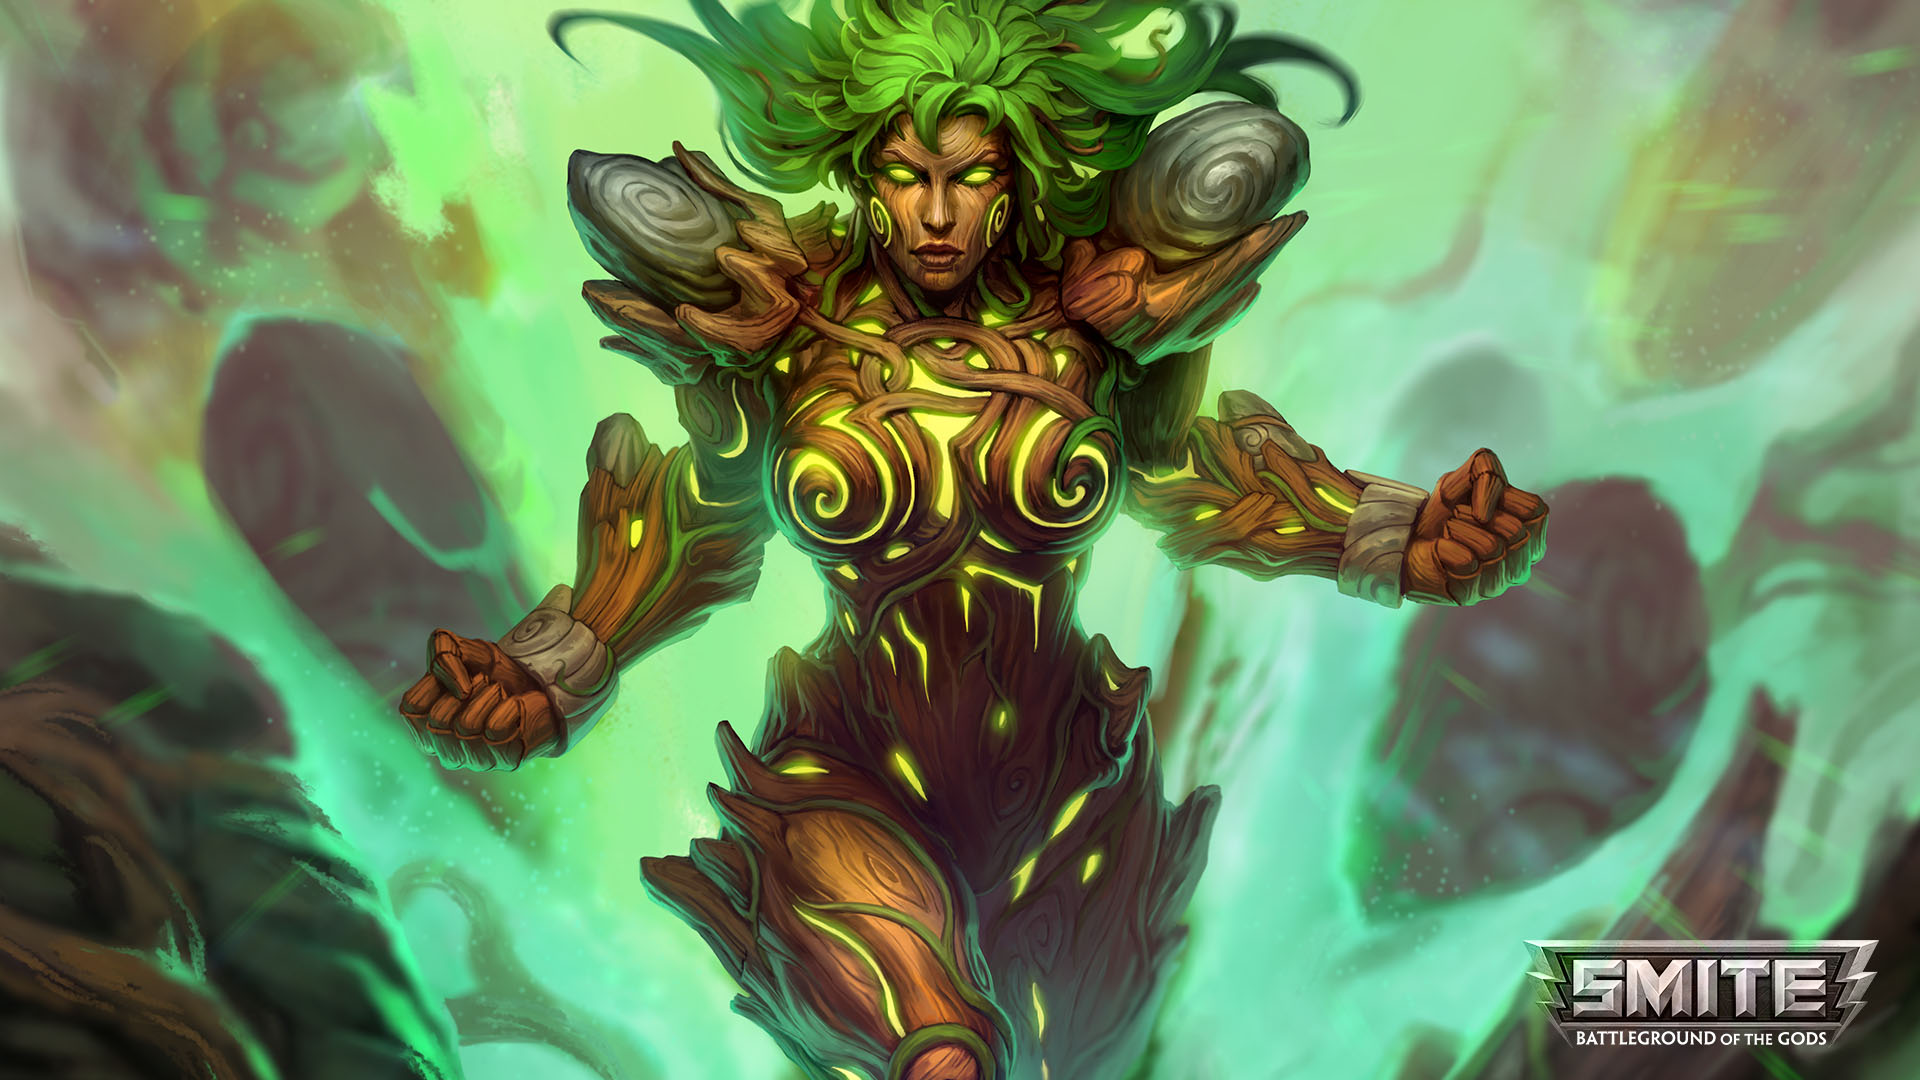 1 Terra Smite Hd Wallpapers Background Images